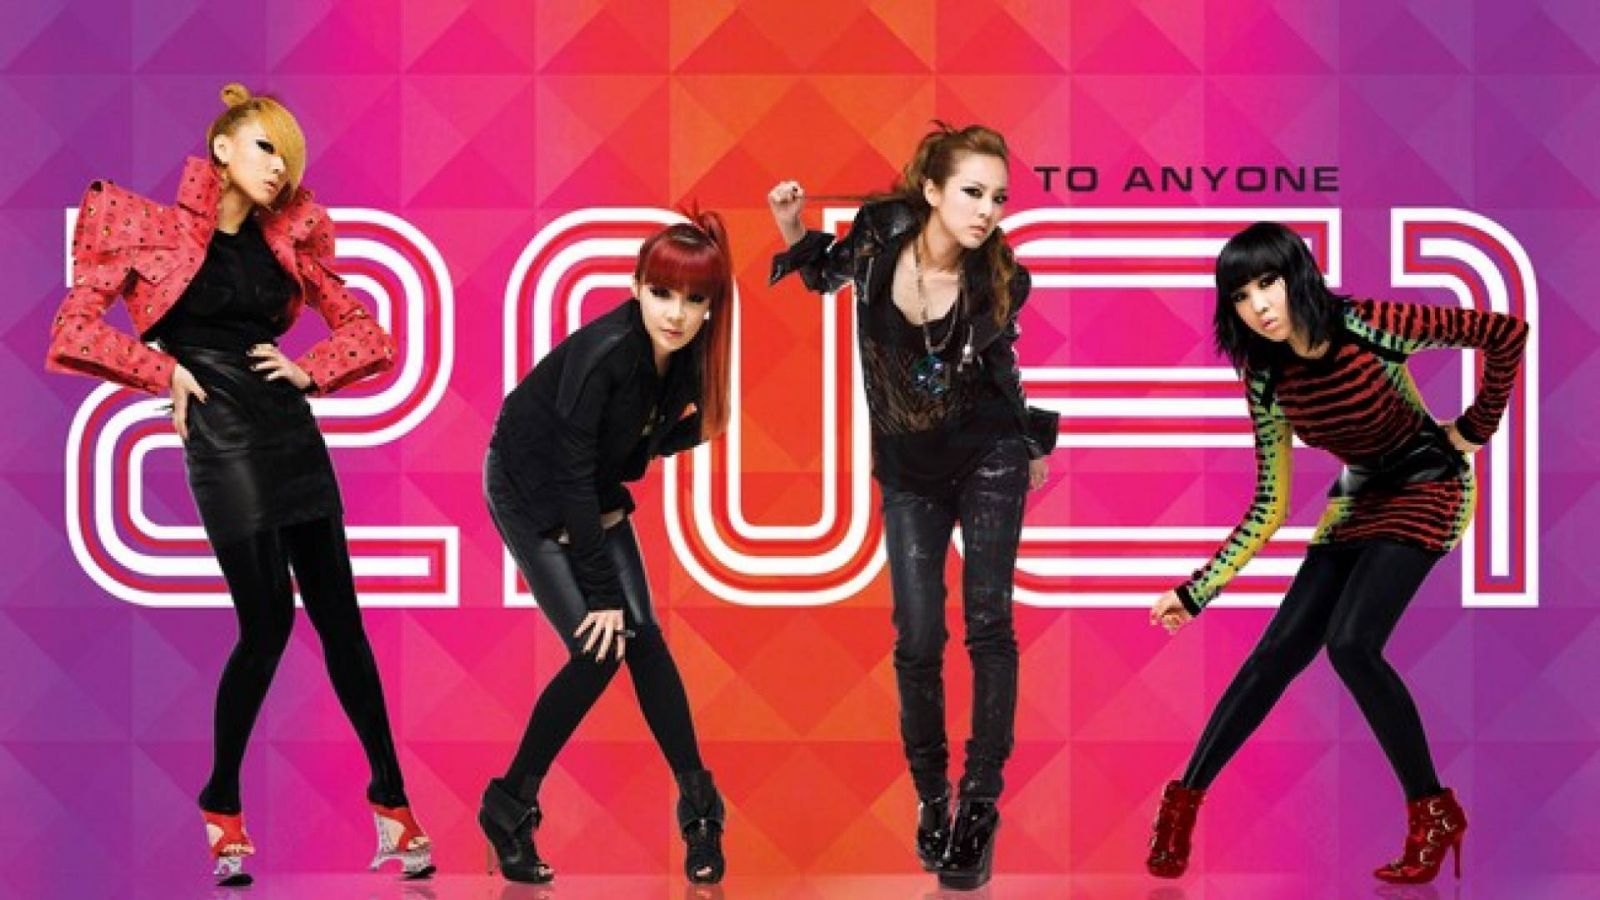 2NE1 © YG Entertainment